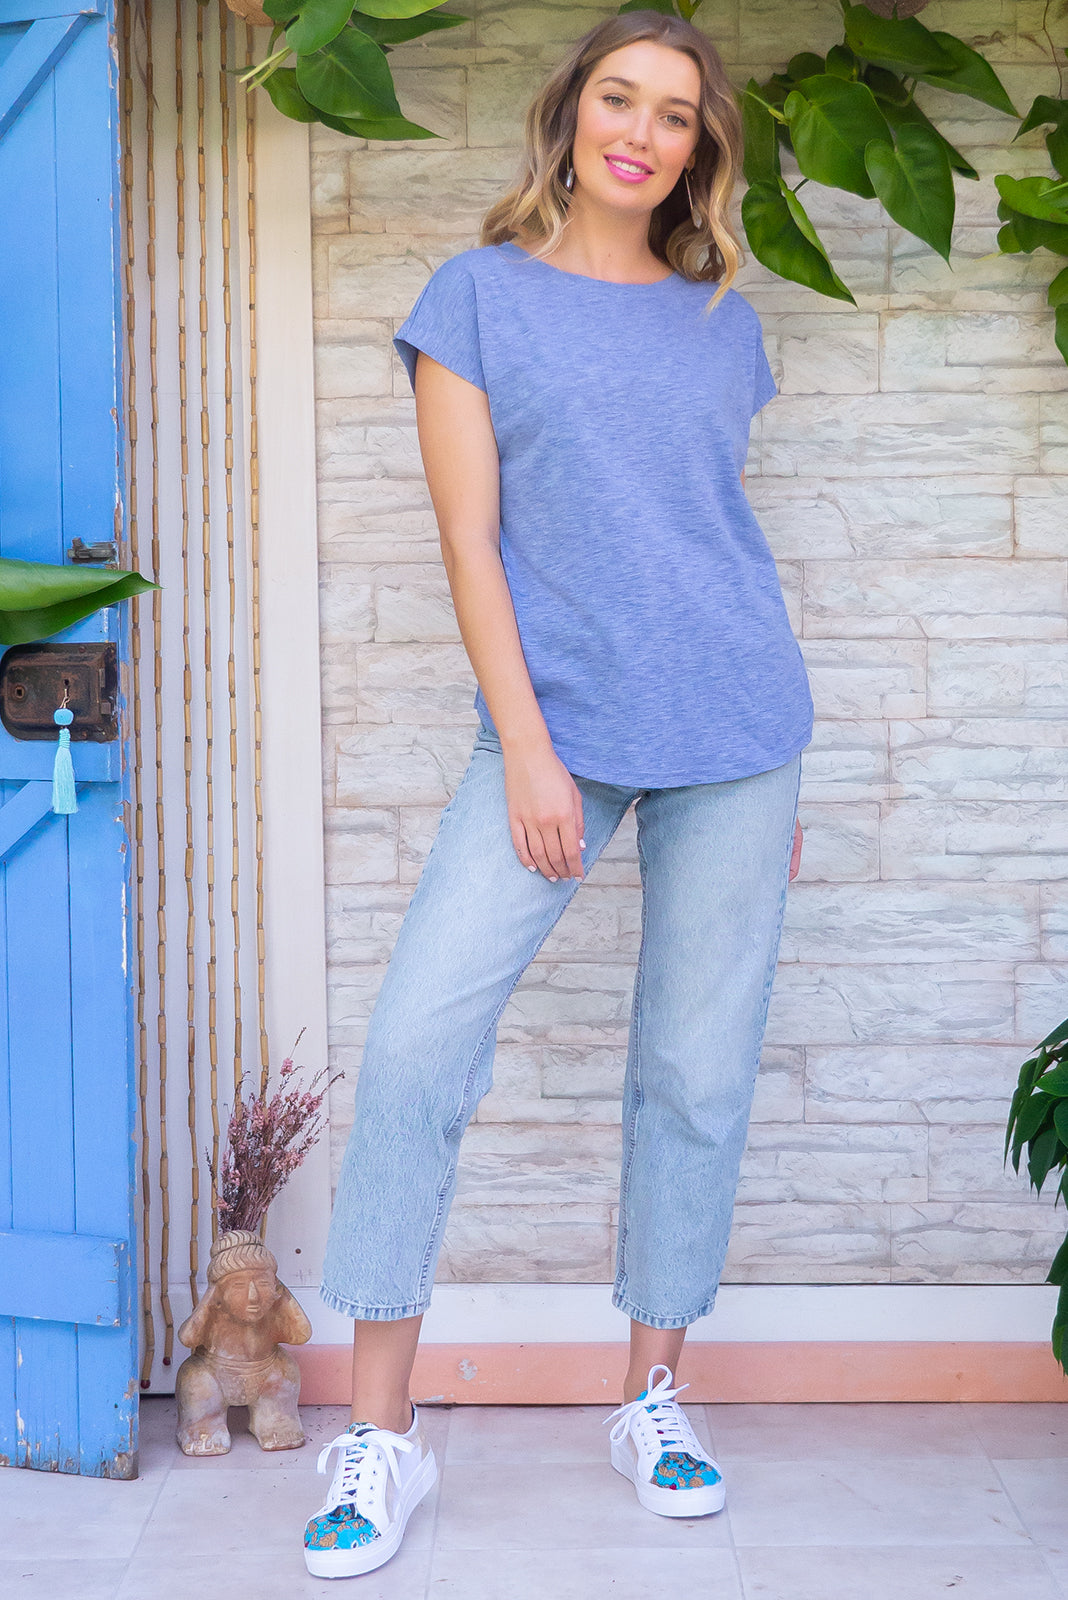 Phoenix Blue Marle short sleeve tshirt has a relaxed fit and is made of soft cotton polyester fabric with a scoop neckline and cap sleeve in a cool blue marle